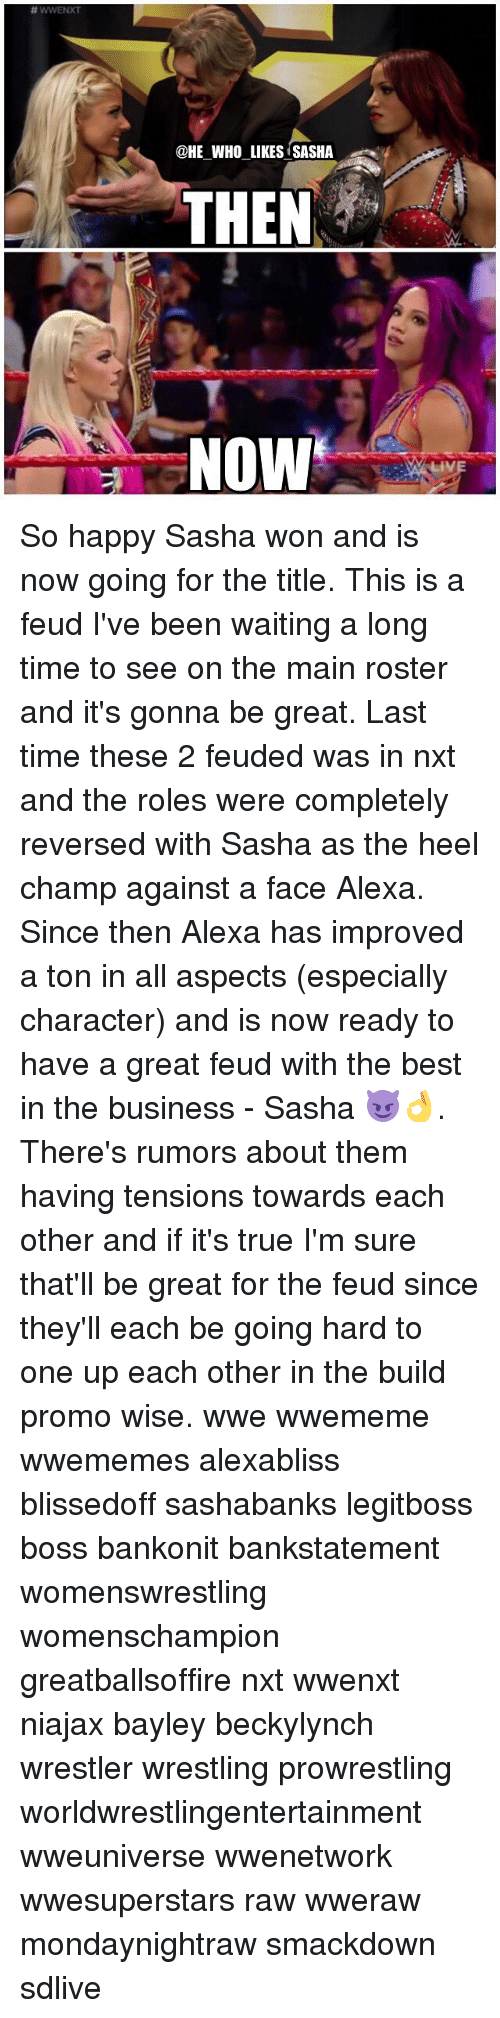 Memes, True, and Wrestling: @HE WHO LIKES SASHA  THEN ,  NOW So happy Sasha won and is now going for the title. This is a feud I've been waiting a long time to see on the main roster and it's gonna be great. Last time these 2 feuded was in nxt and the roles were completely reversed with Sasha as the heel champ against a face Alexa. Since then Alexa has improved a ton in all aspects (especially character) and is now ready to have a great feud with the best in the business - Sasha 😈👌. There's rumors about them having tensions towards each other and if it's true I'm sure that'll be great for the feud since they'll each be going hard to one up each other in the build promo wise. wwe wwememe wwememes alexabliss blissedoff sashabanks legitboss boss bankonit bankstatement womenswrestling womenschampion greatballsoffire nxt wwenxt niajax bayley beckylynch wrestler wrestling prowrestling worldwrestlingentertainment wweuniverse wwenetwork wwesuperstars raw wweraw mondaynightraw smackdown sdlive